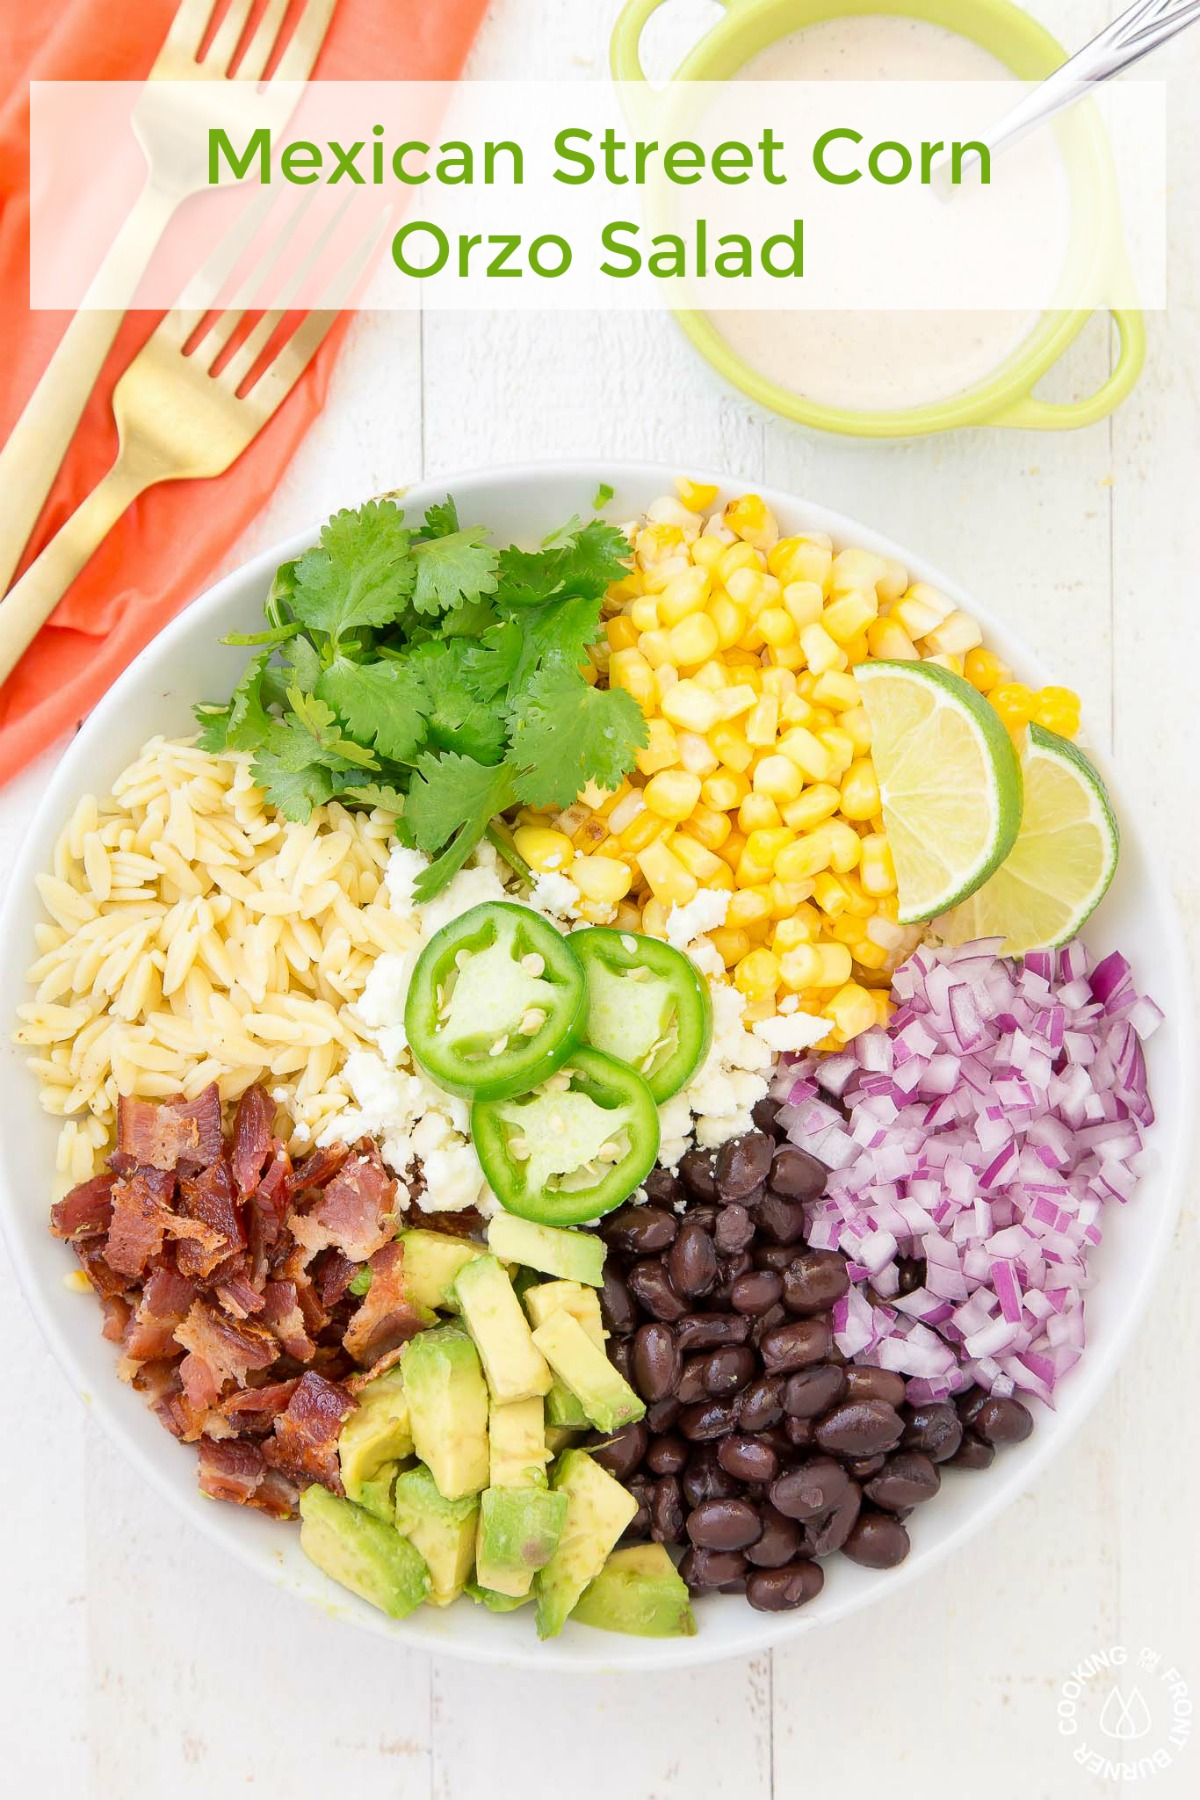 What could be simpler than having this go to Mexican Street Corn Orzo Salad recipe on hand when you want to enjoy a tasty and filling salad! This salad has it all - sweetness, savory, a bit spicy, fresh ingredients and bacon (oh ya, bacon!) #mexicanstreetcorn #salad #sidedish #mexican #corn #chililimedressing